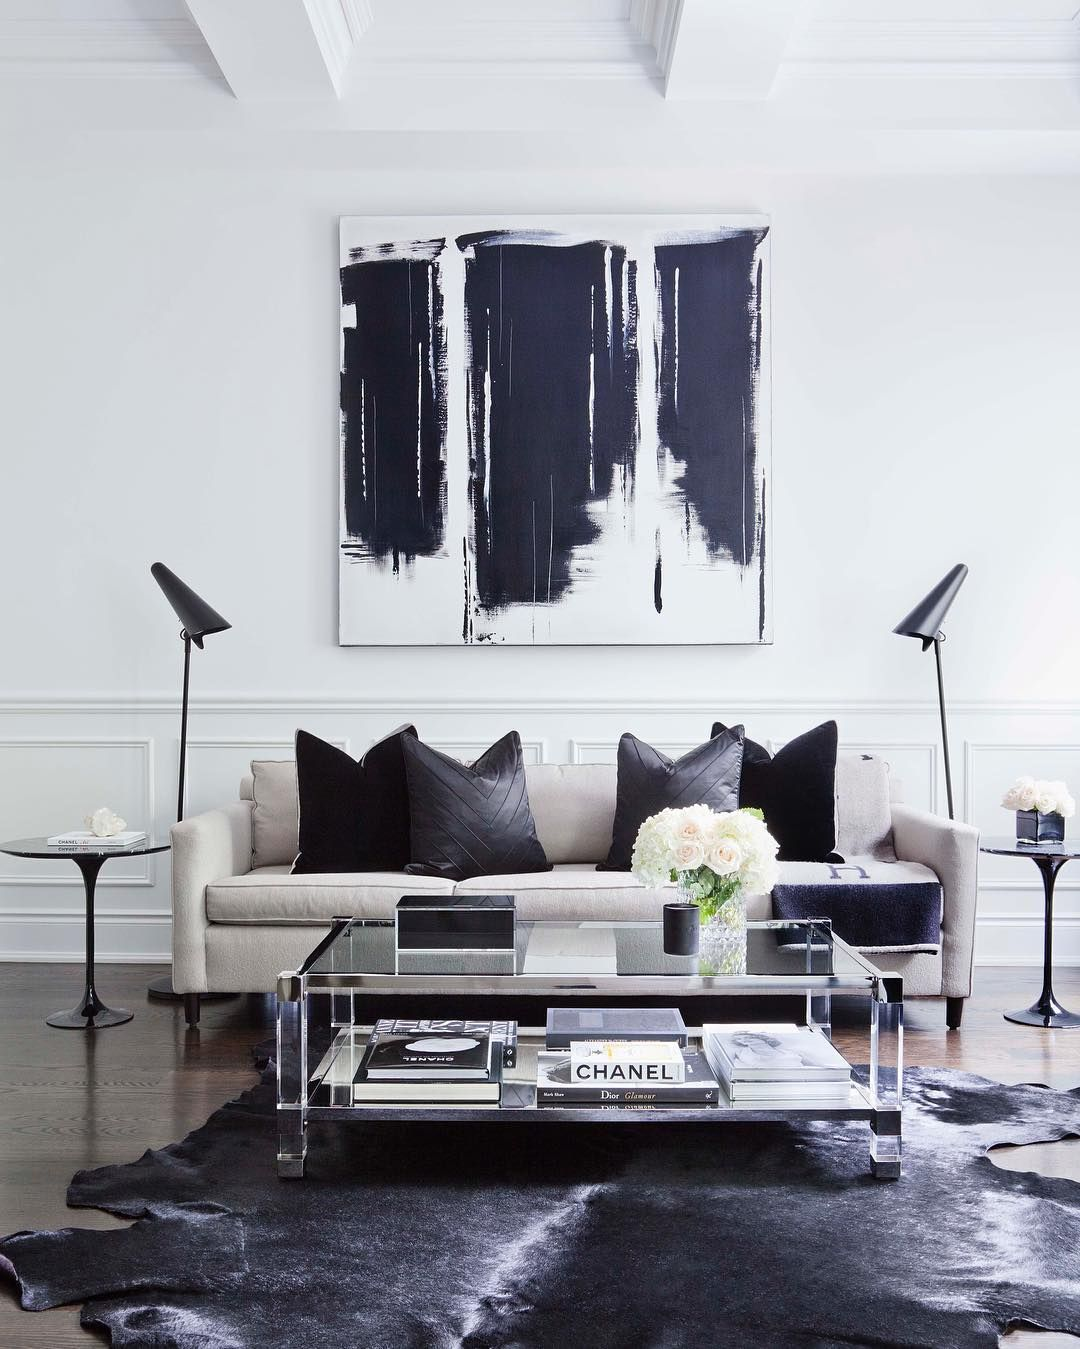 Black White Decor For Those Who Love Swoon Worthy Interiors With A Modern